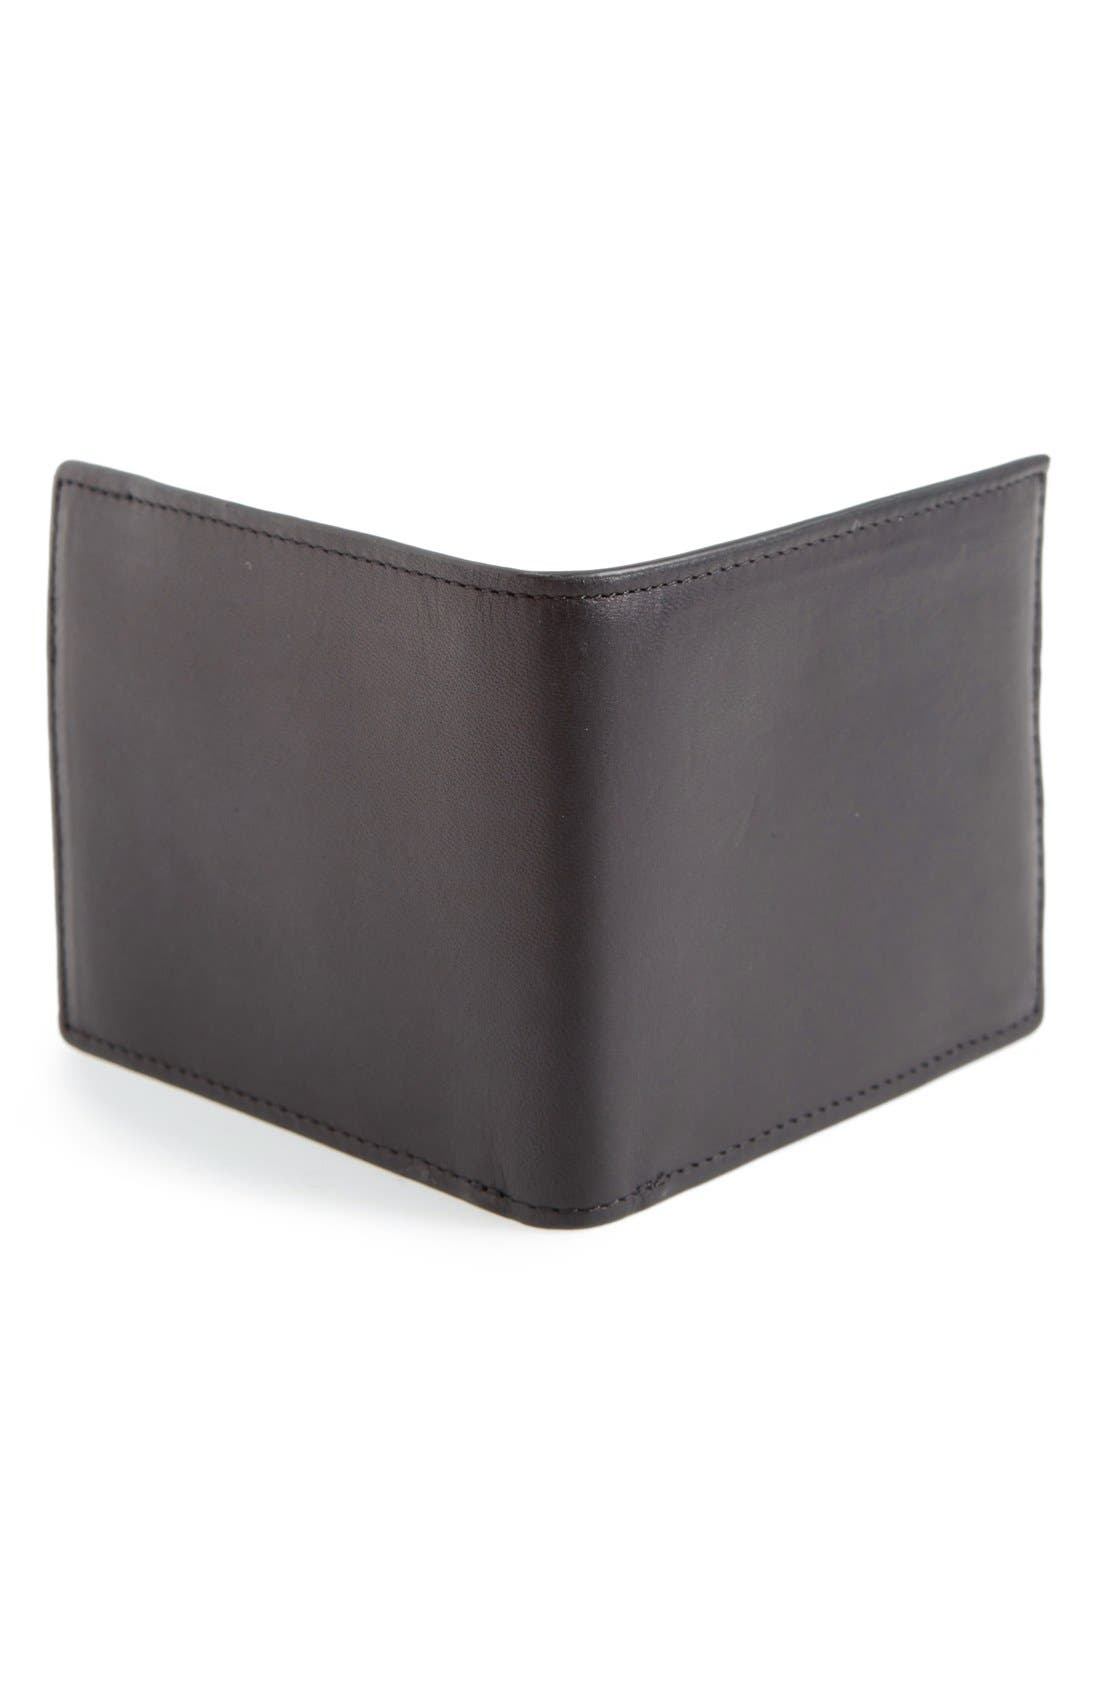 Hampshire Leather Bifold Wallet,                             Alternate thumbnail 3, color,                             002